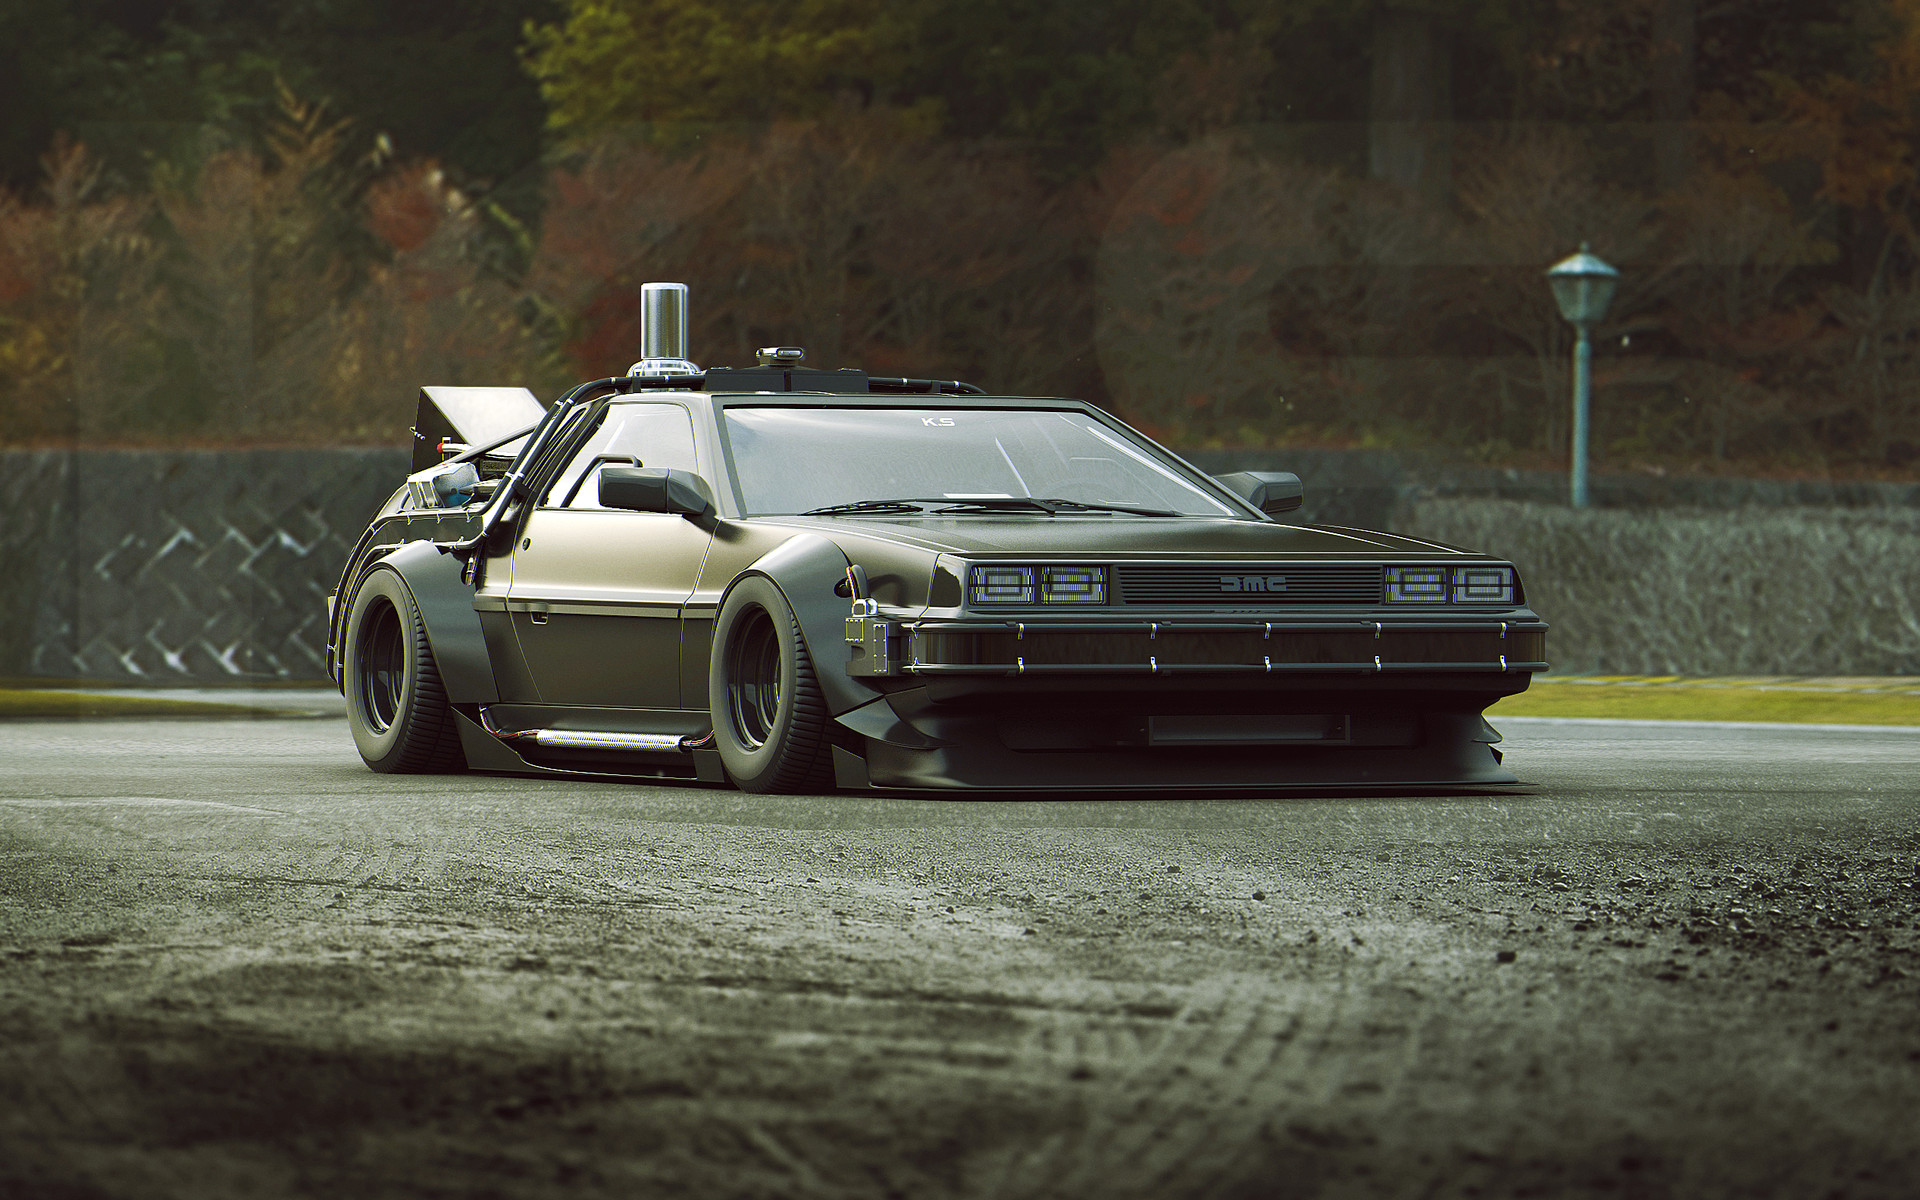 Back To The Future Iphone X Wallpaper Delorean Full Hd Wallpaper And Background Image